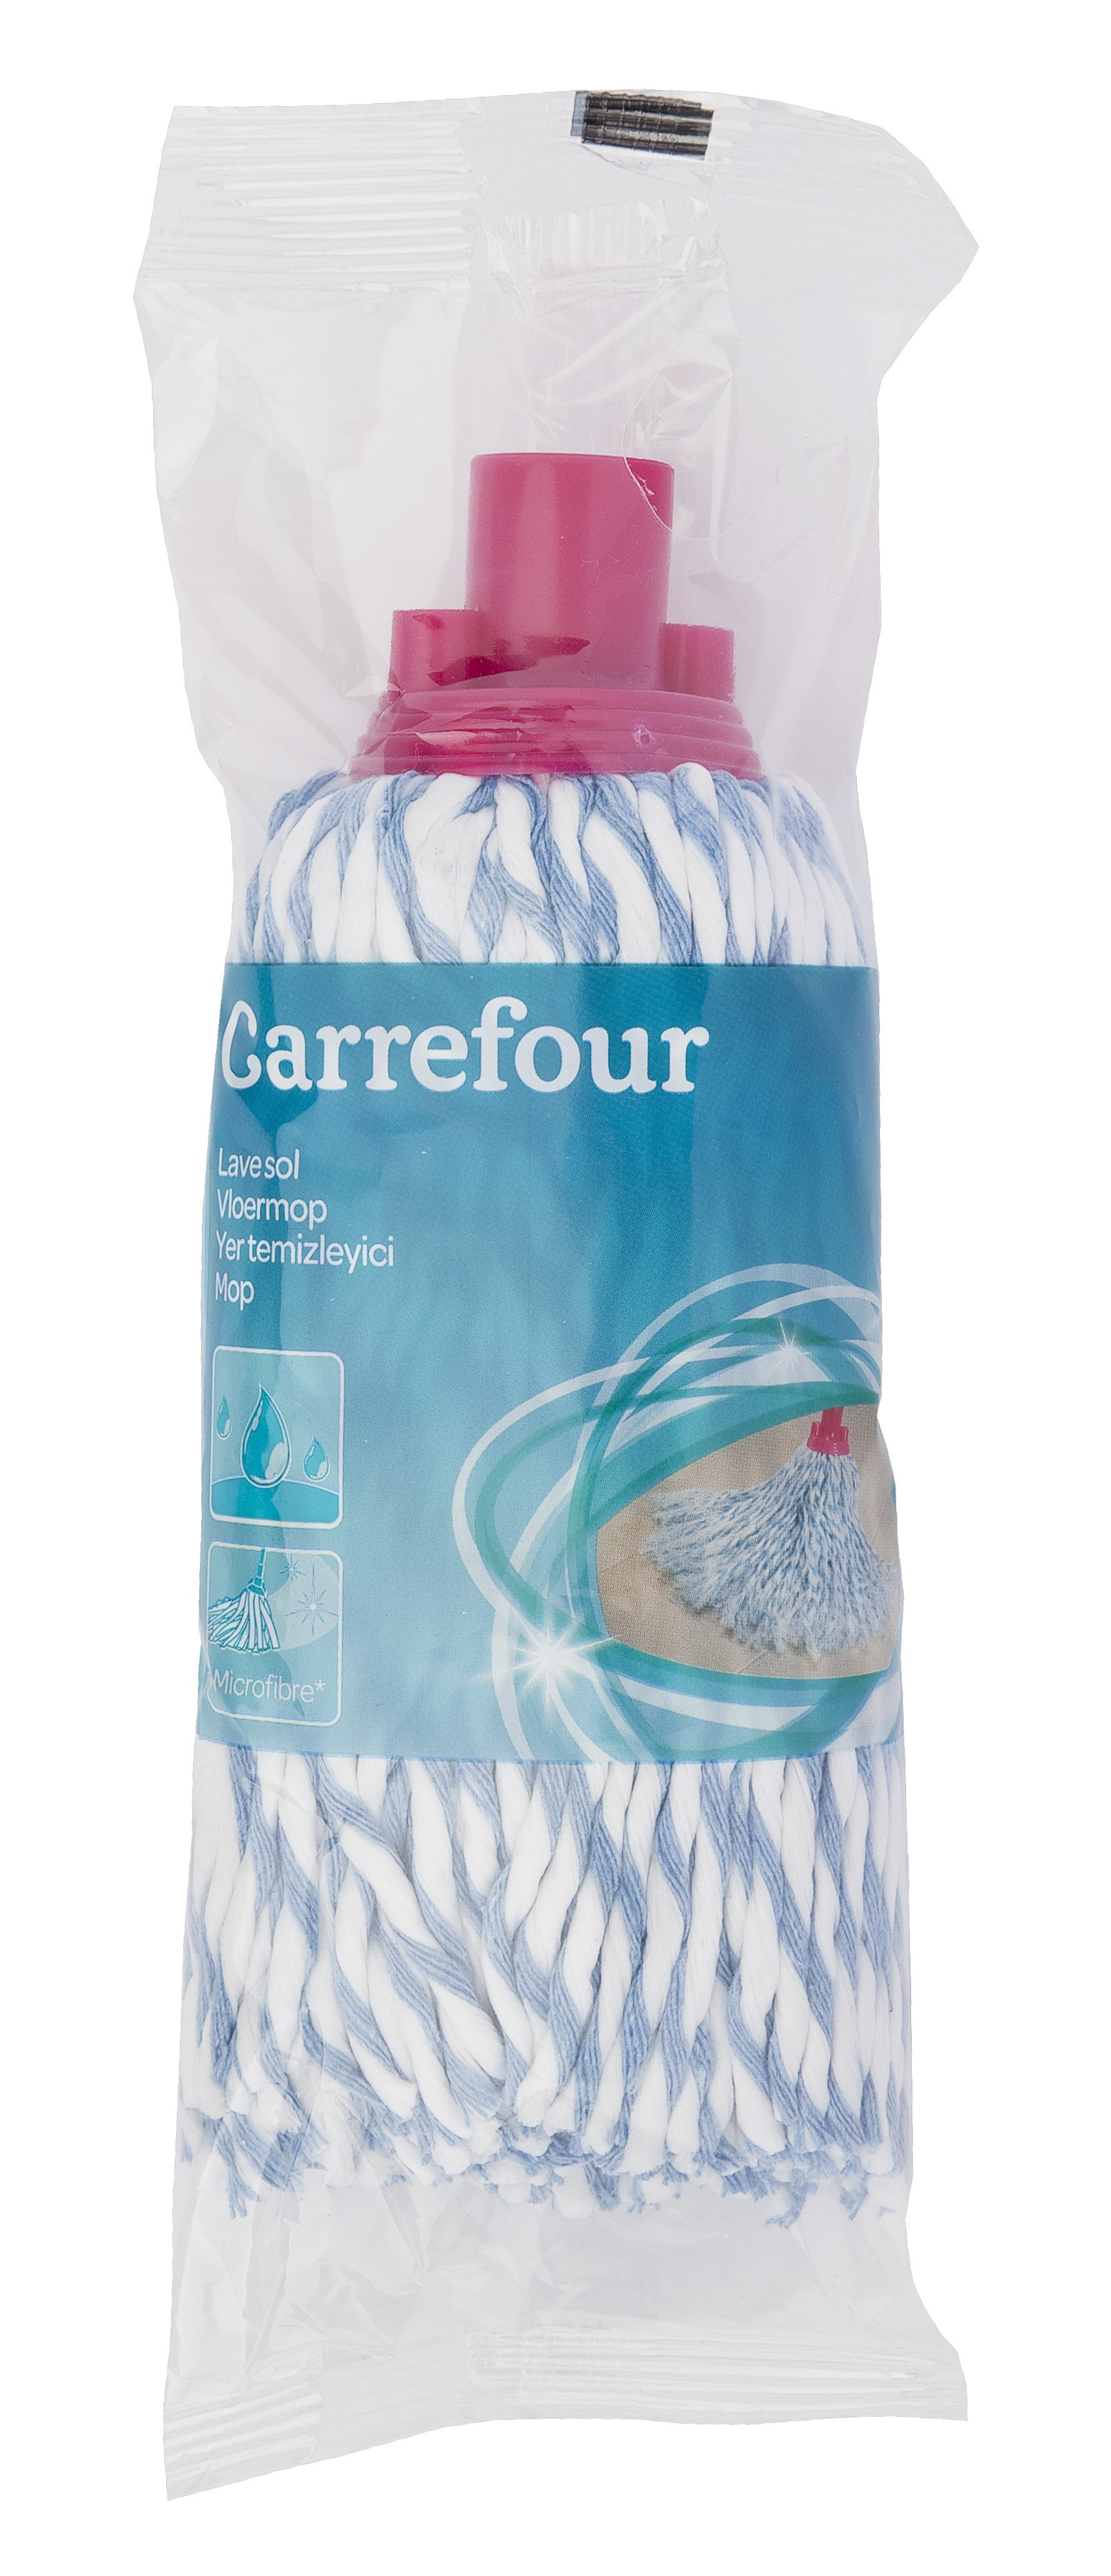 carrefour lave sol frange microfibre coton 267203 pas cher achat vente balais. Black Bedroom Furniture Sets. Home Design Ideas